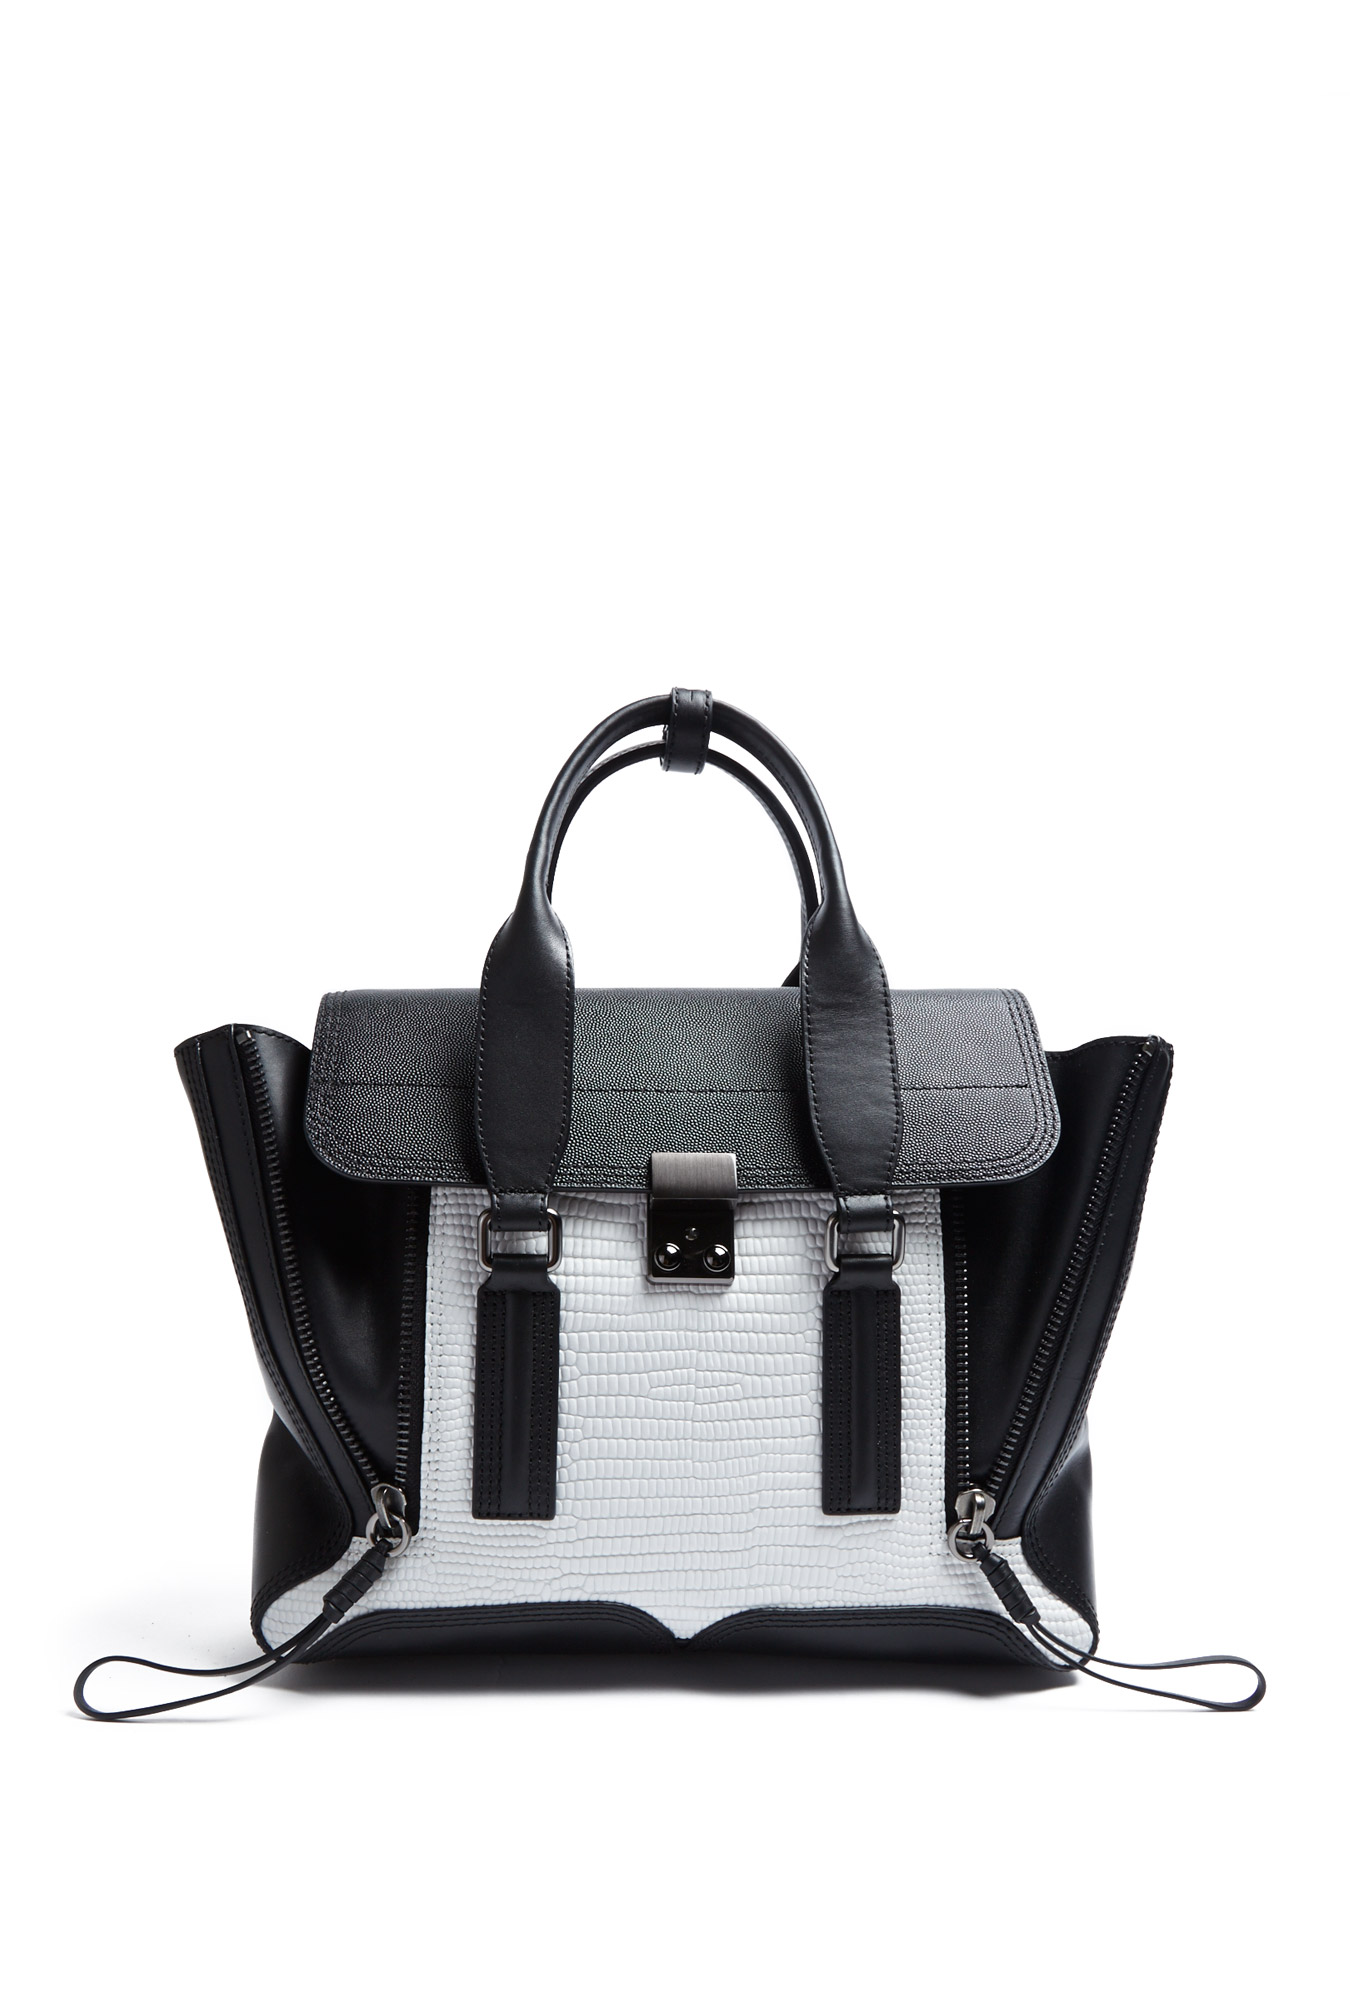 3.1 Phillip Lim  | Colour Block Pashli Satchel by 3.1 Phillip Lim